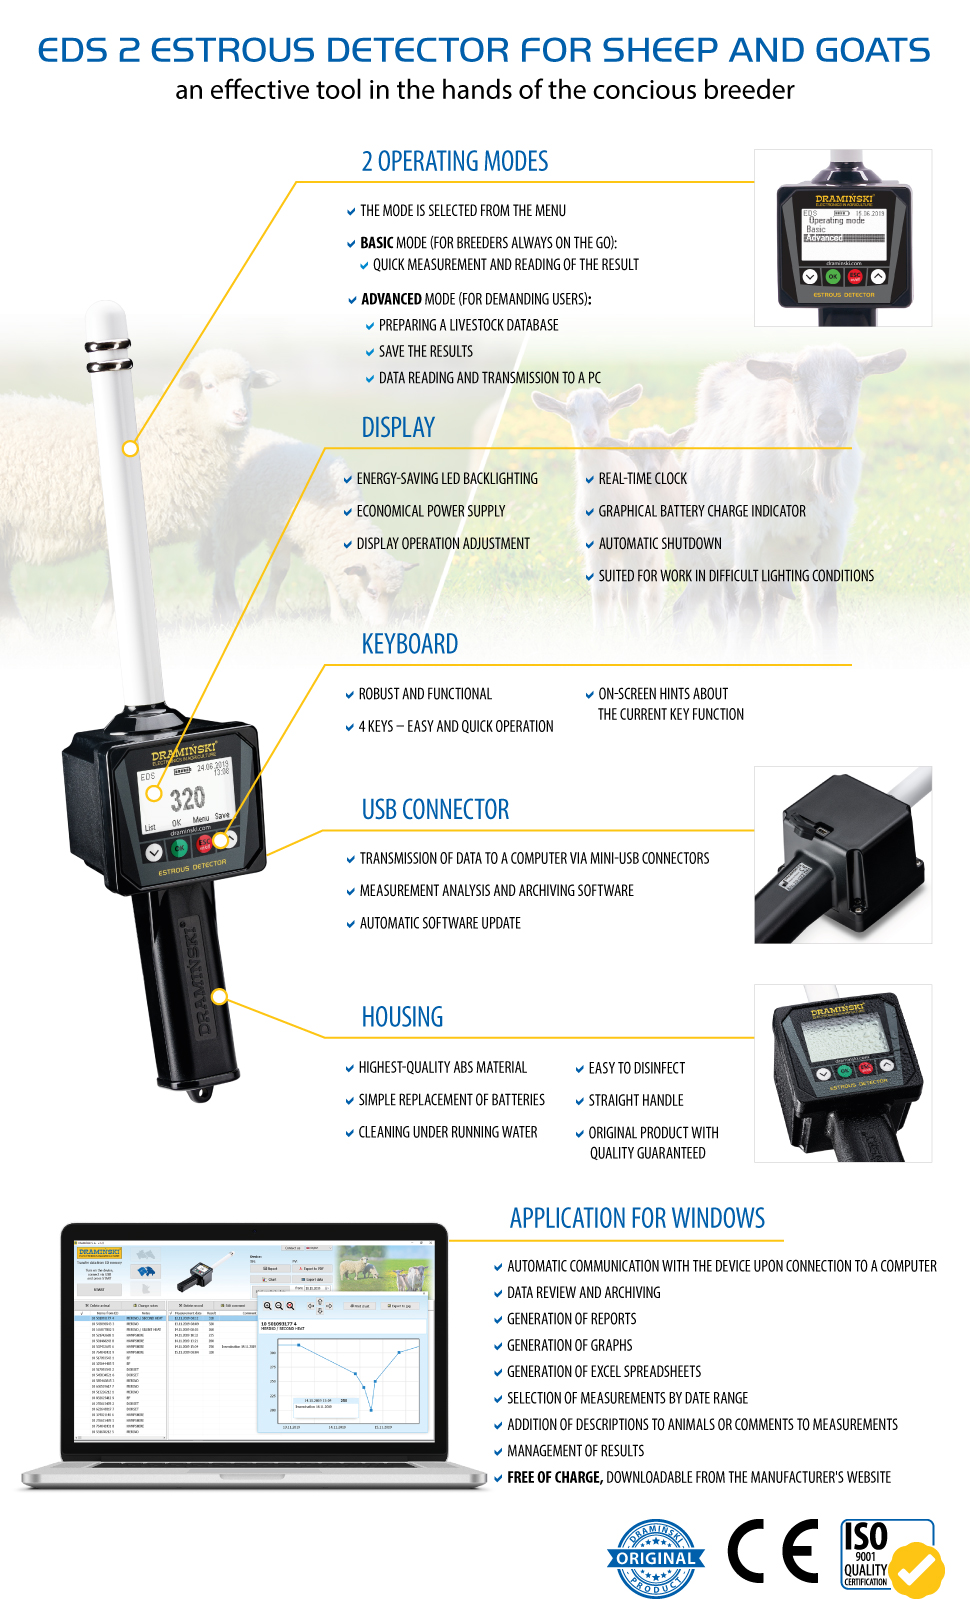 oestrus detector for sheep and goats optimal insemination time